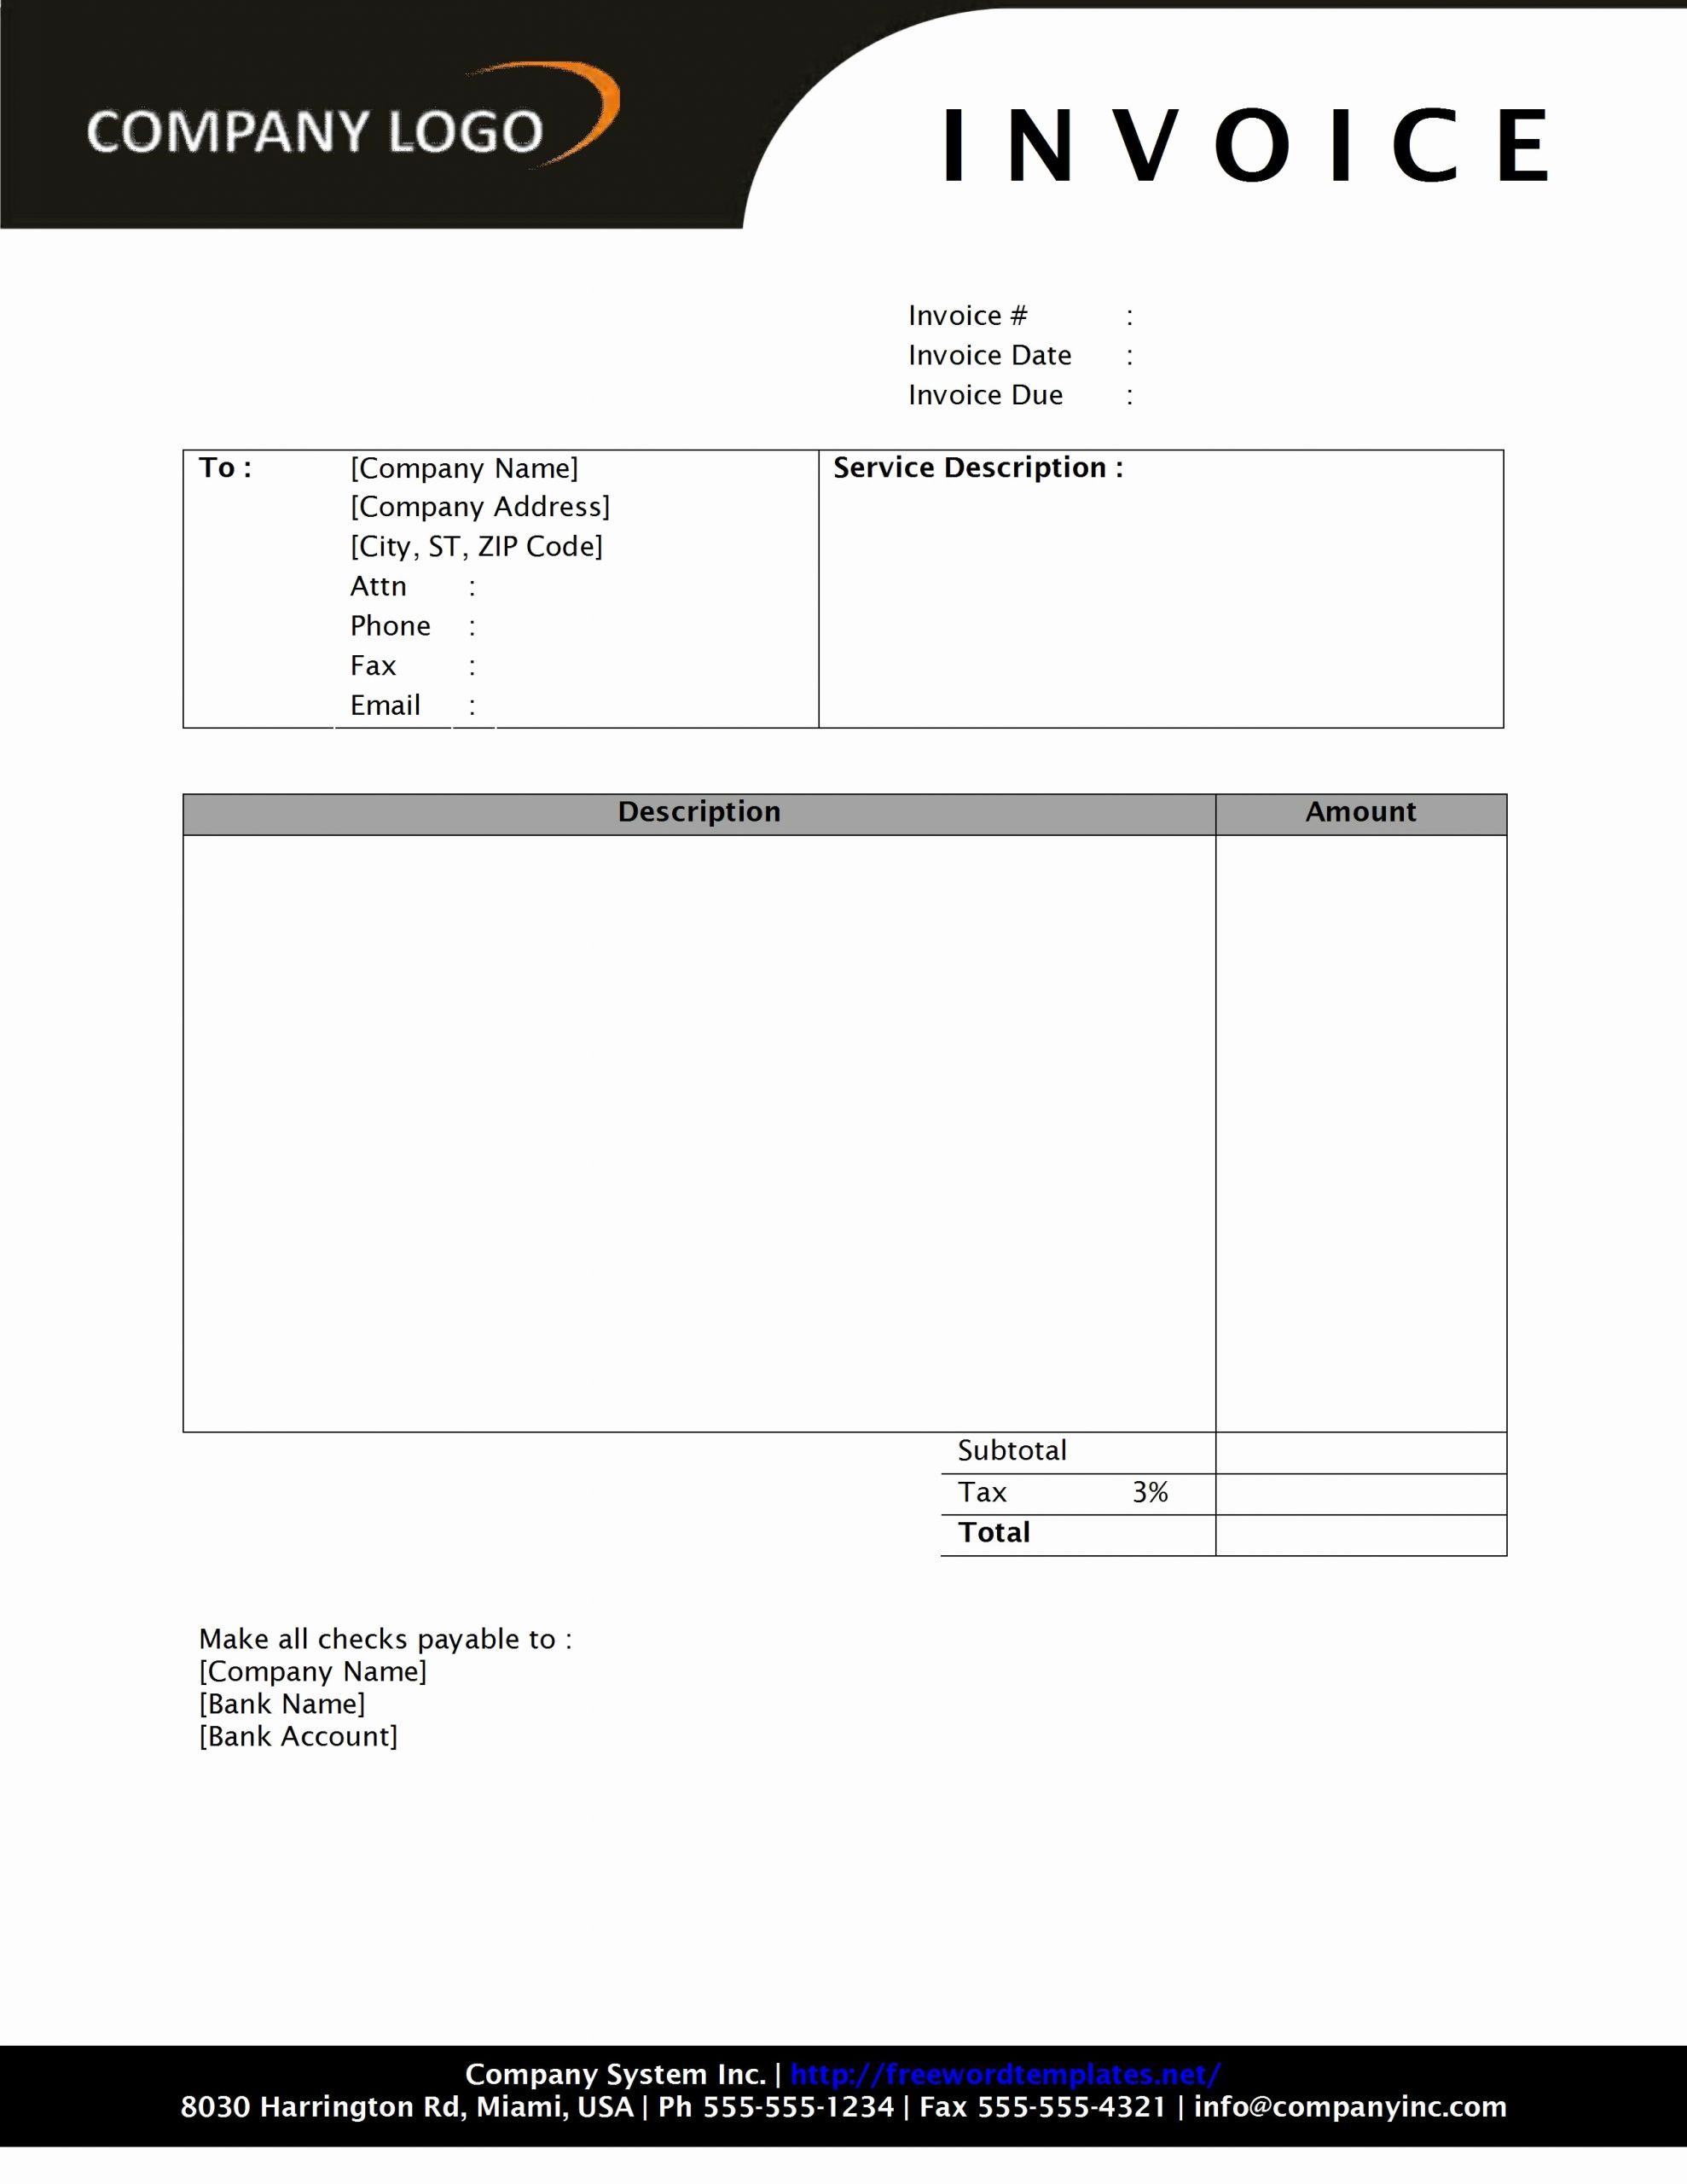 Sales Invoice Template Word Beautiful Invoice Template Word 2010